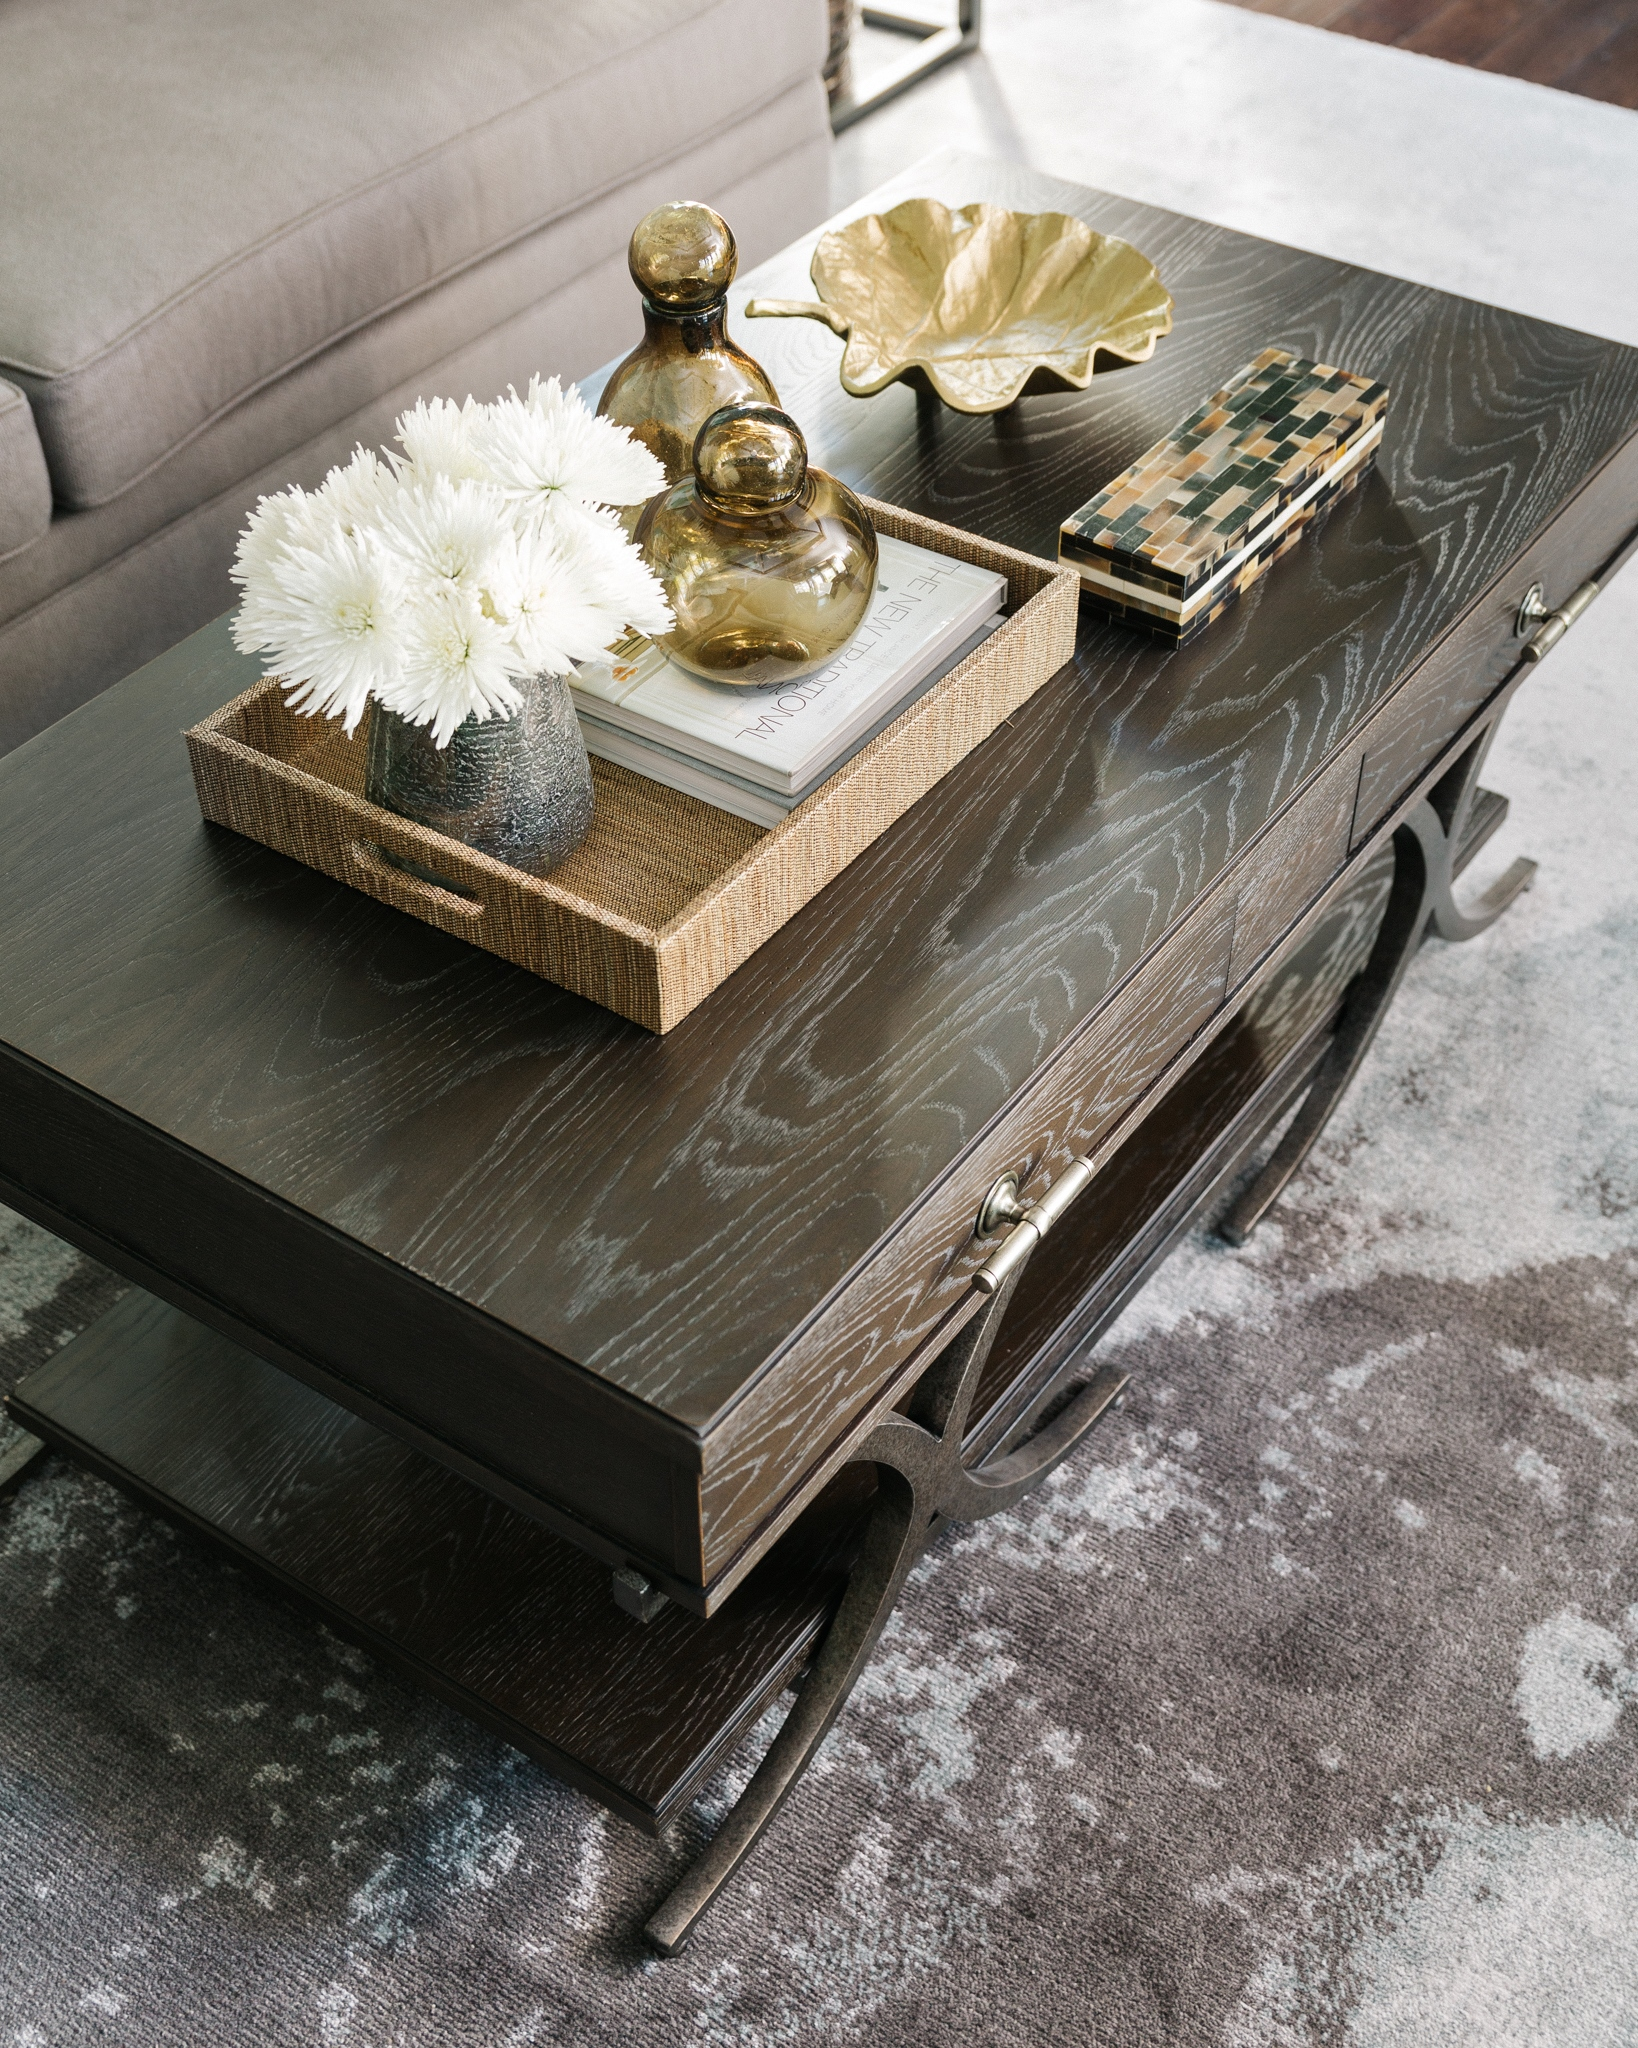 This coffee table has the right ingredients for styling…..fresh flowers, lovely books, a tray to corral, colored glass, a gilded bowl, and a pretty box. Carla Aston, Designer | Colleen Scott, Photographer #coffeetablestyling #coffeetable #coffeetablebooks